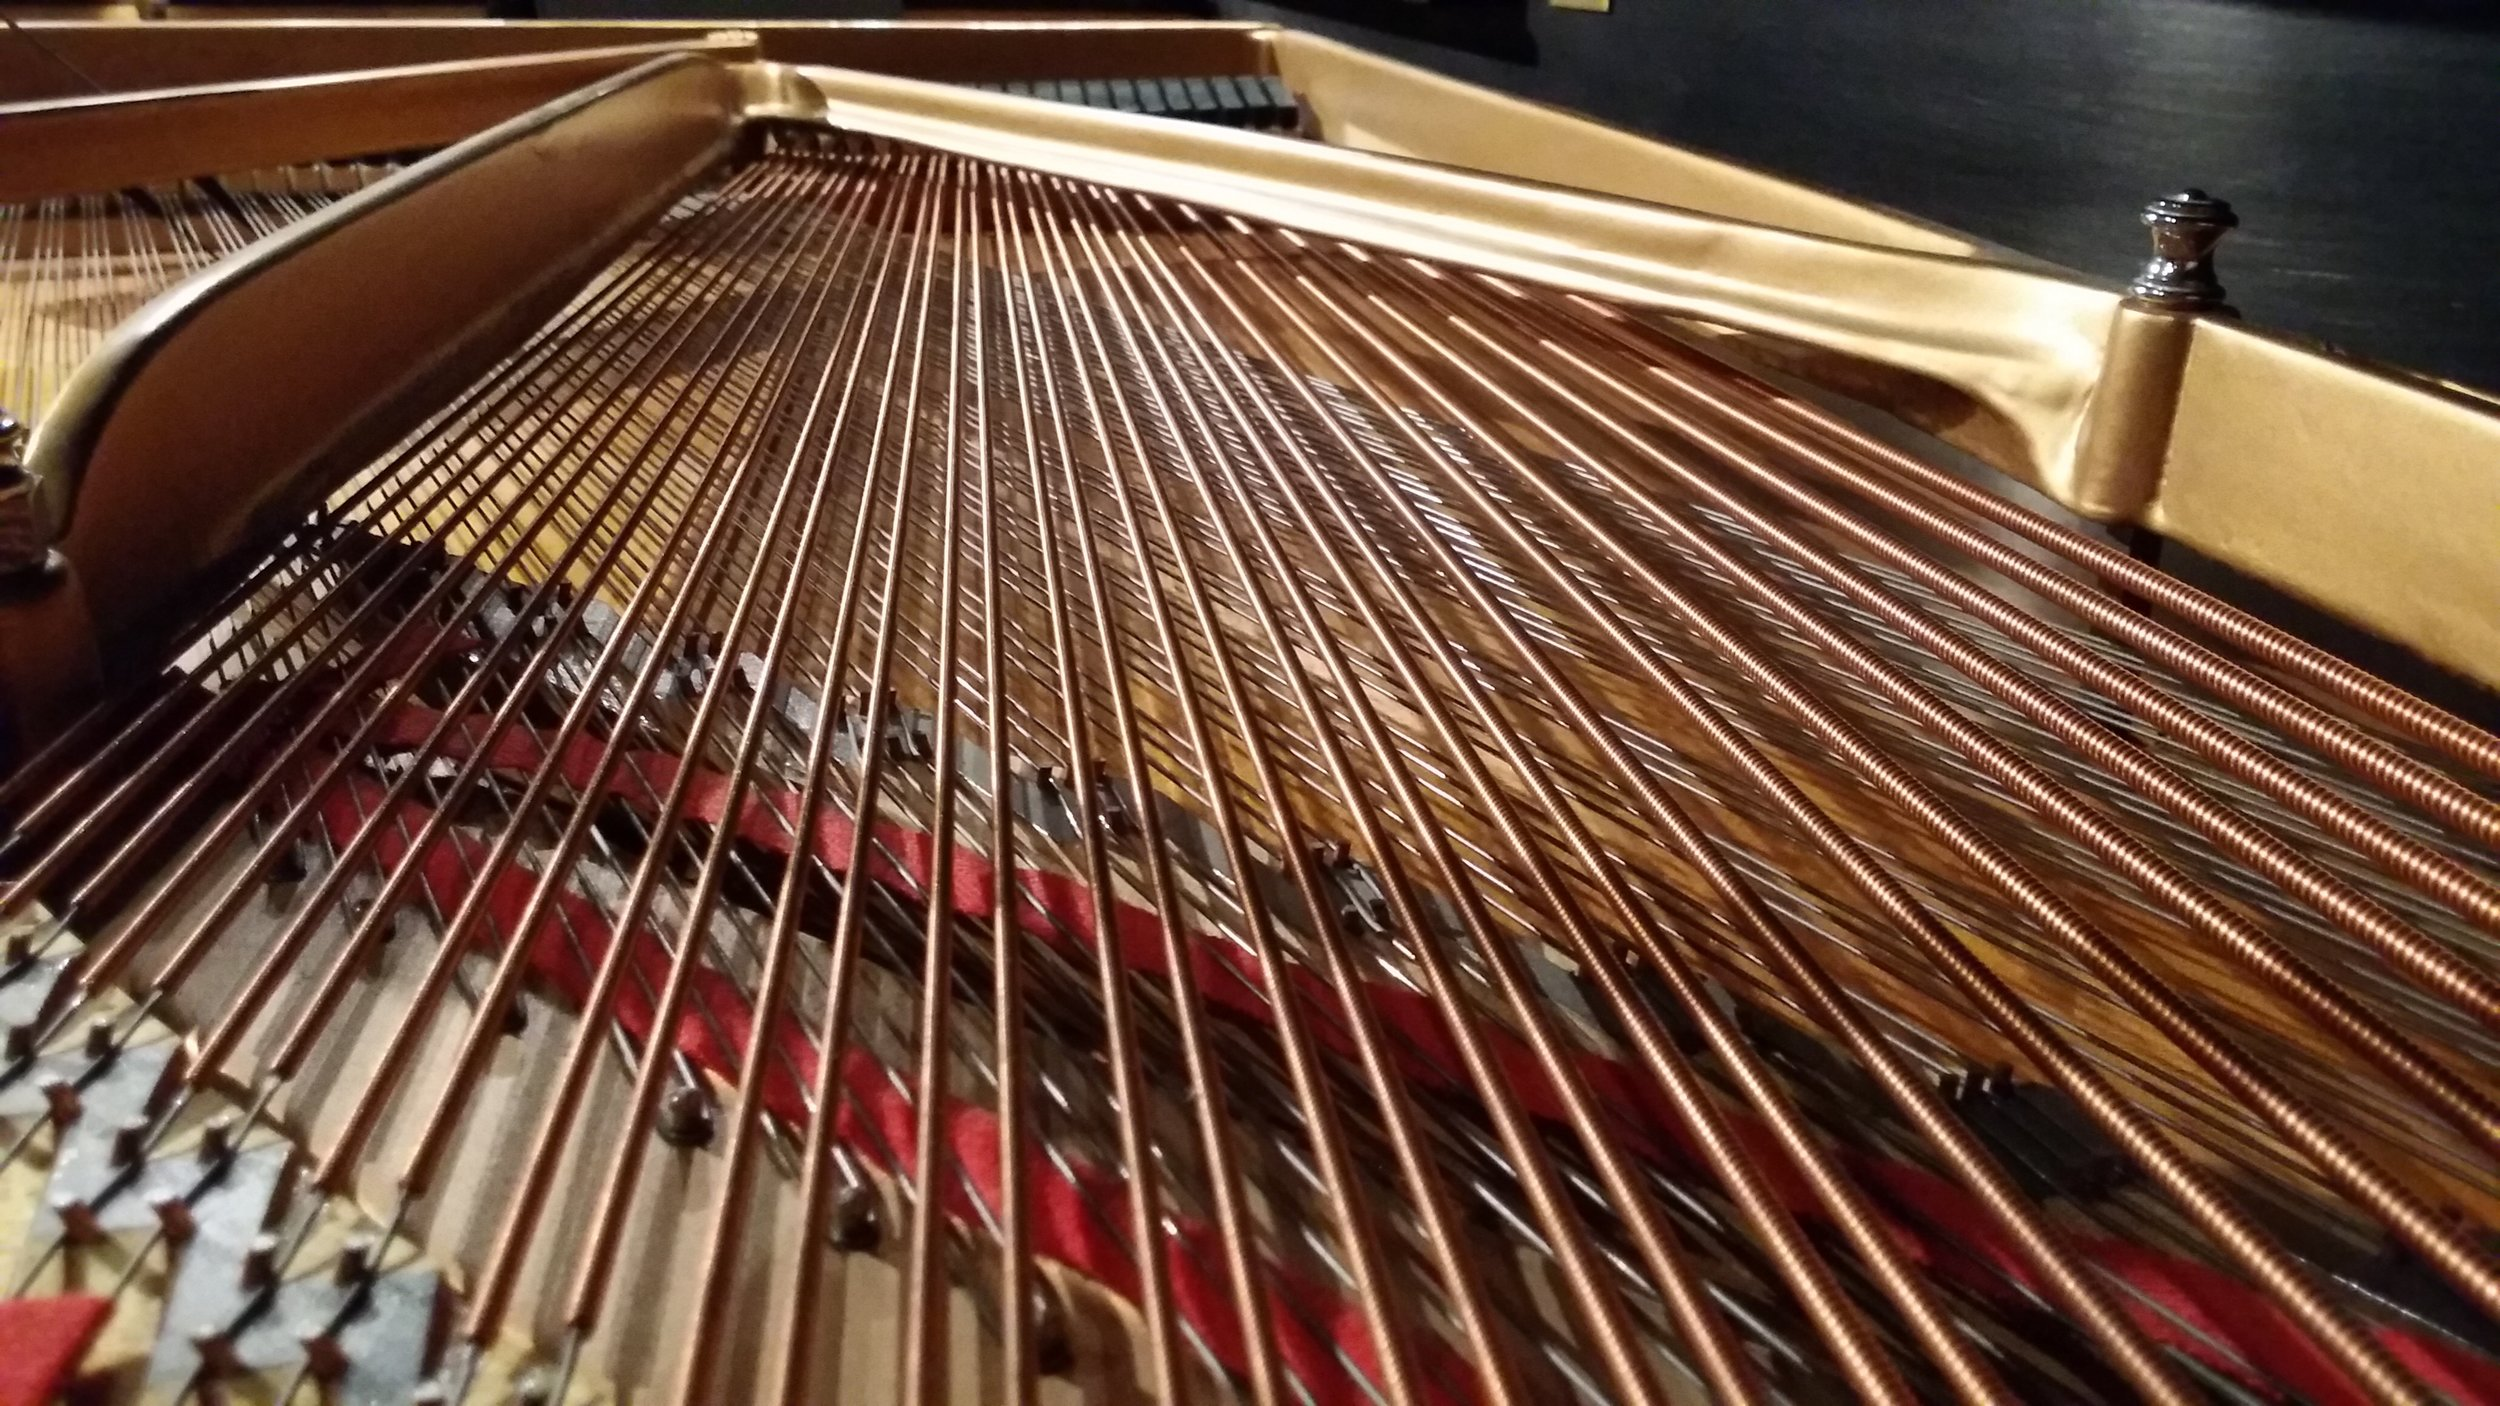 Grand piano bass strings